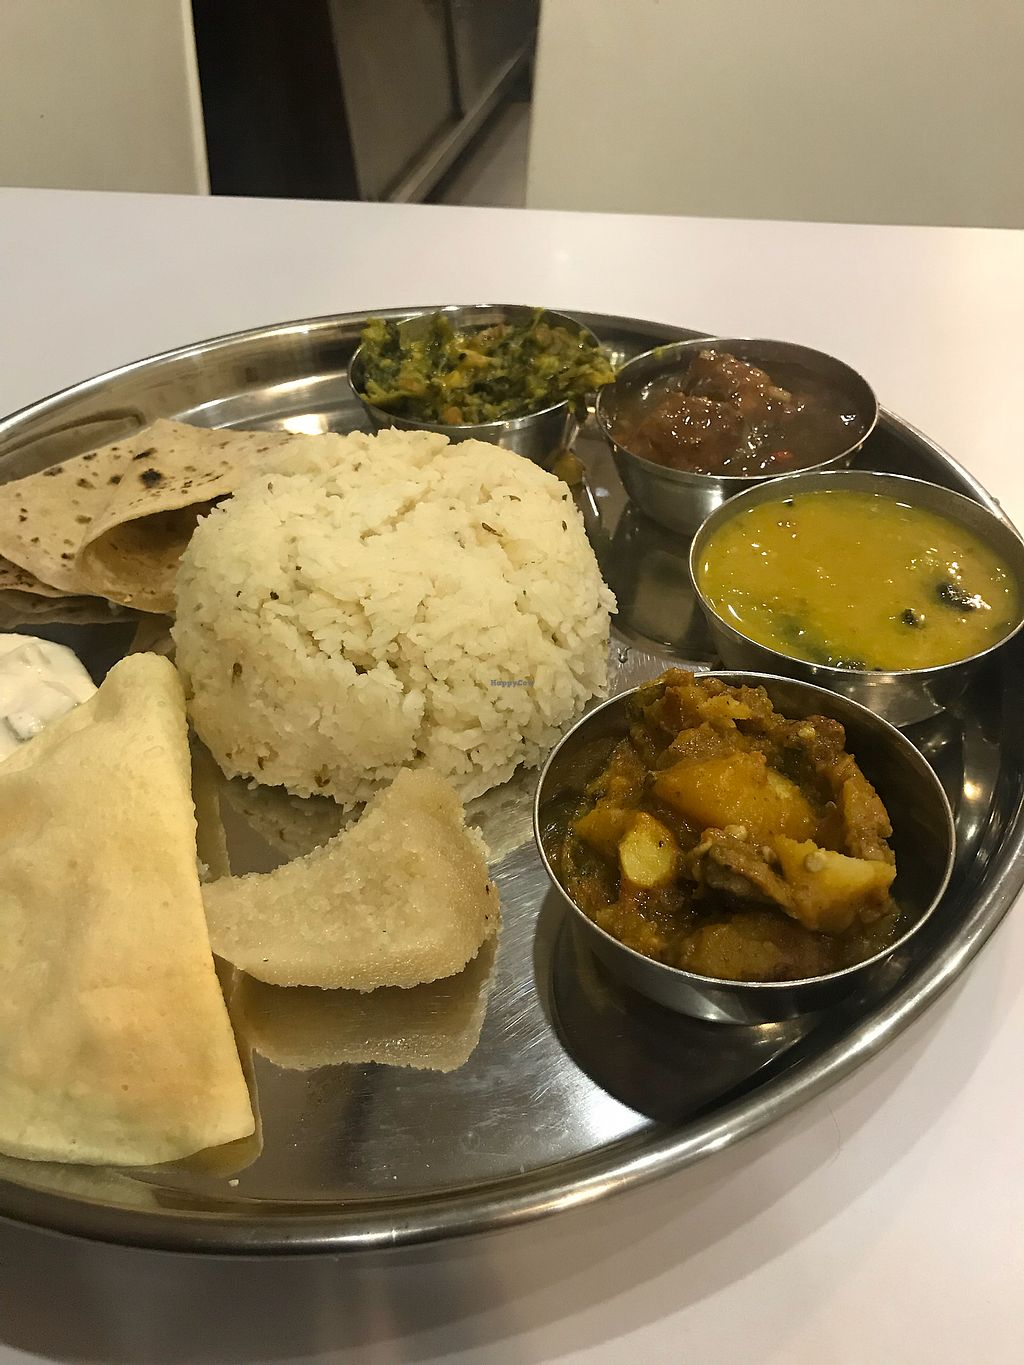 """Photo of Gopal's Vegetarian Restaurant  by <a href=""""/members/profile/edwardbc"""">edwardbc</a> <br/>South Indian plate  <br/> March 1, 2018  - <a href='/contact/abuse/image/54869/365162'>Report</a>"""